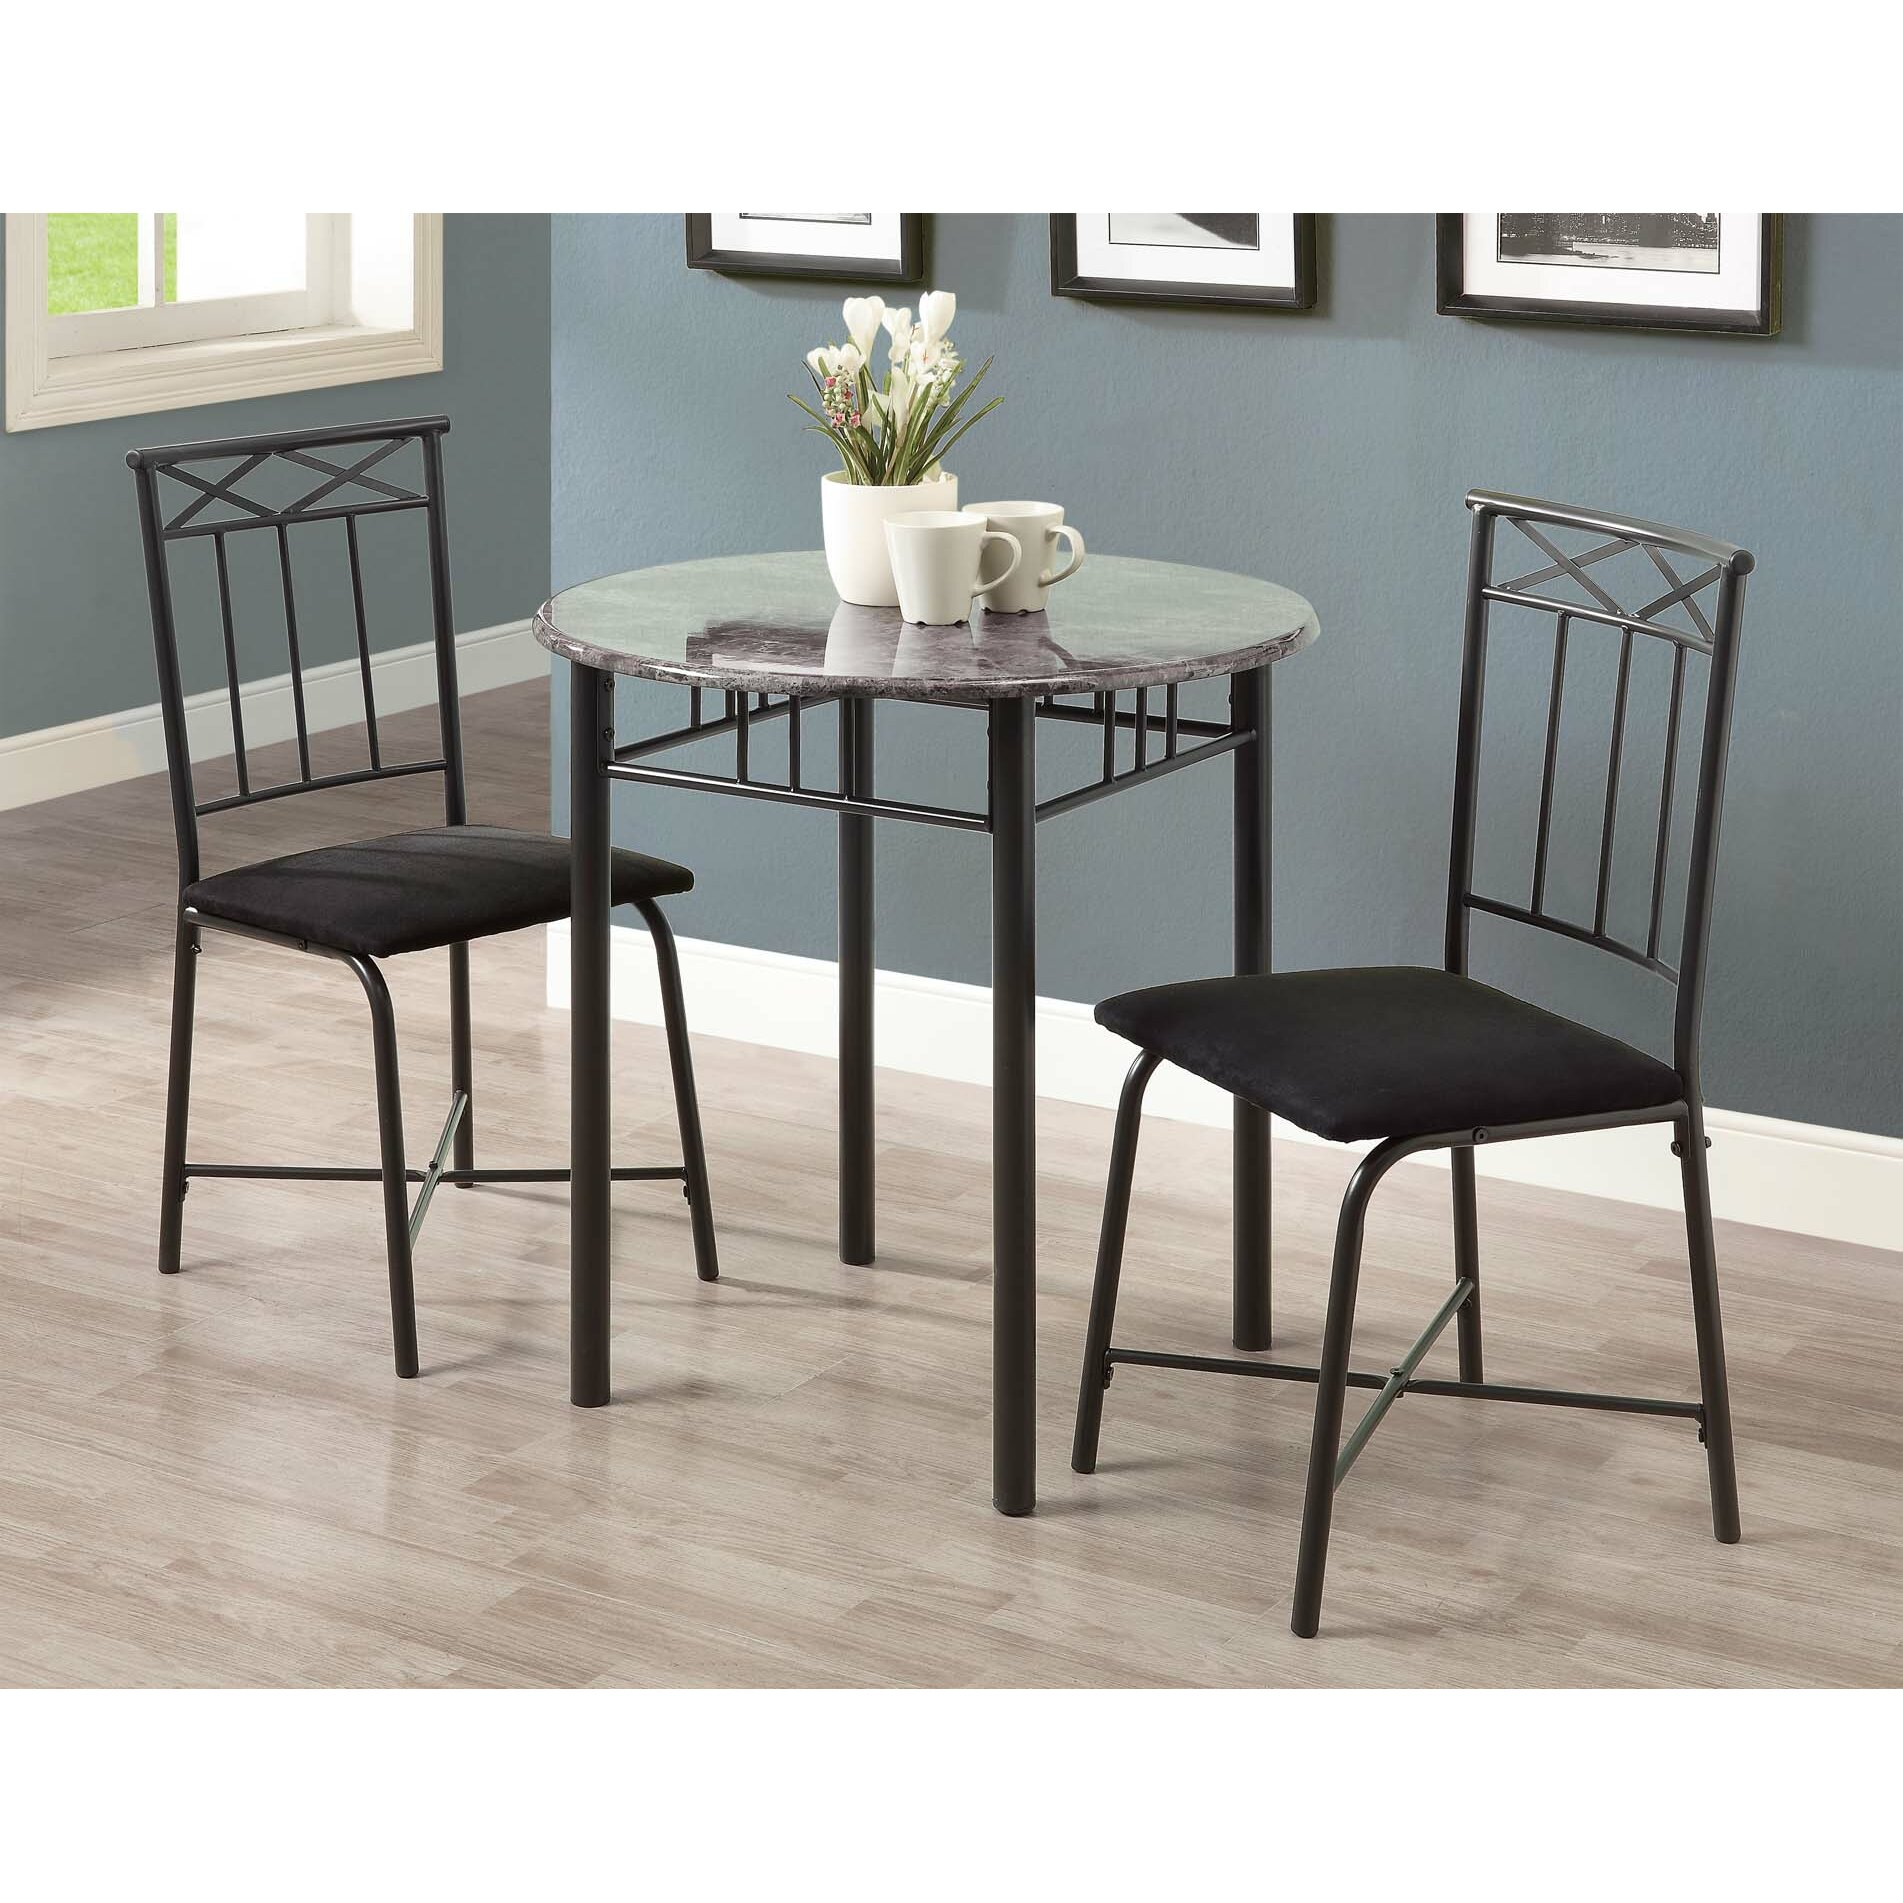 One Dining Room Three Different Ways: Monarch Specialties Inc. 3 Piece Dining Set & Reviews